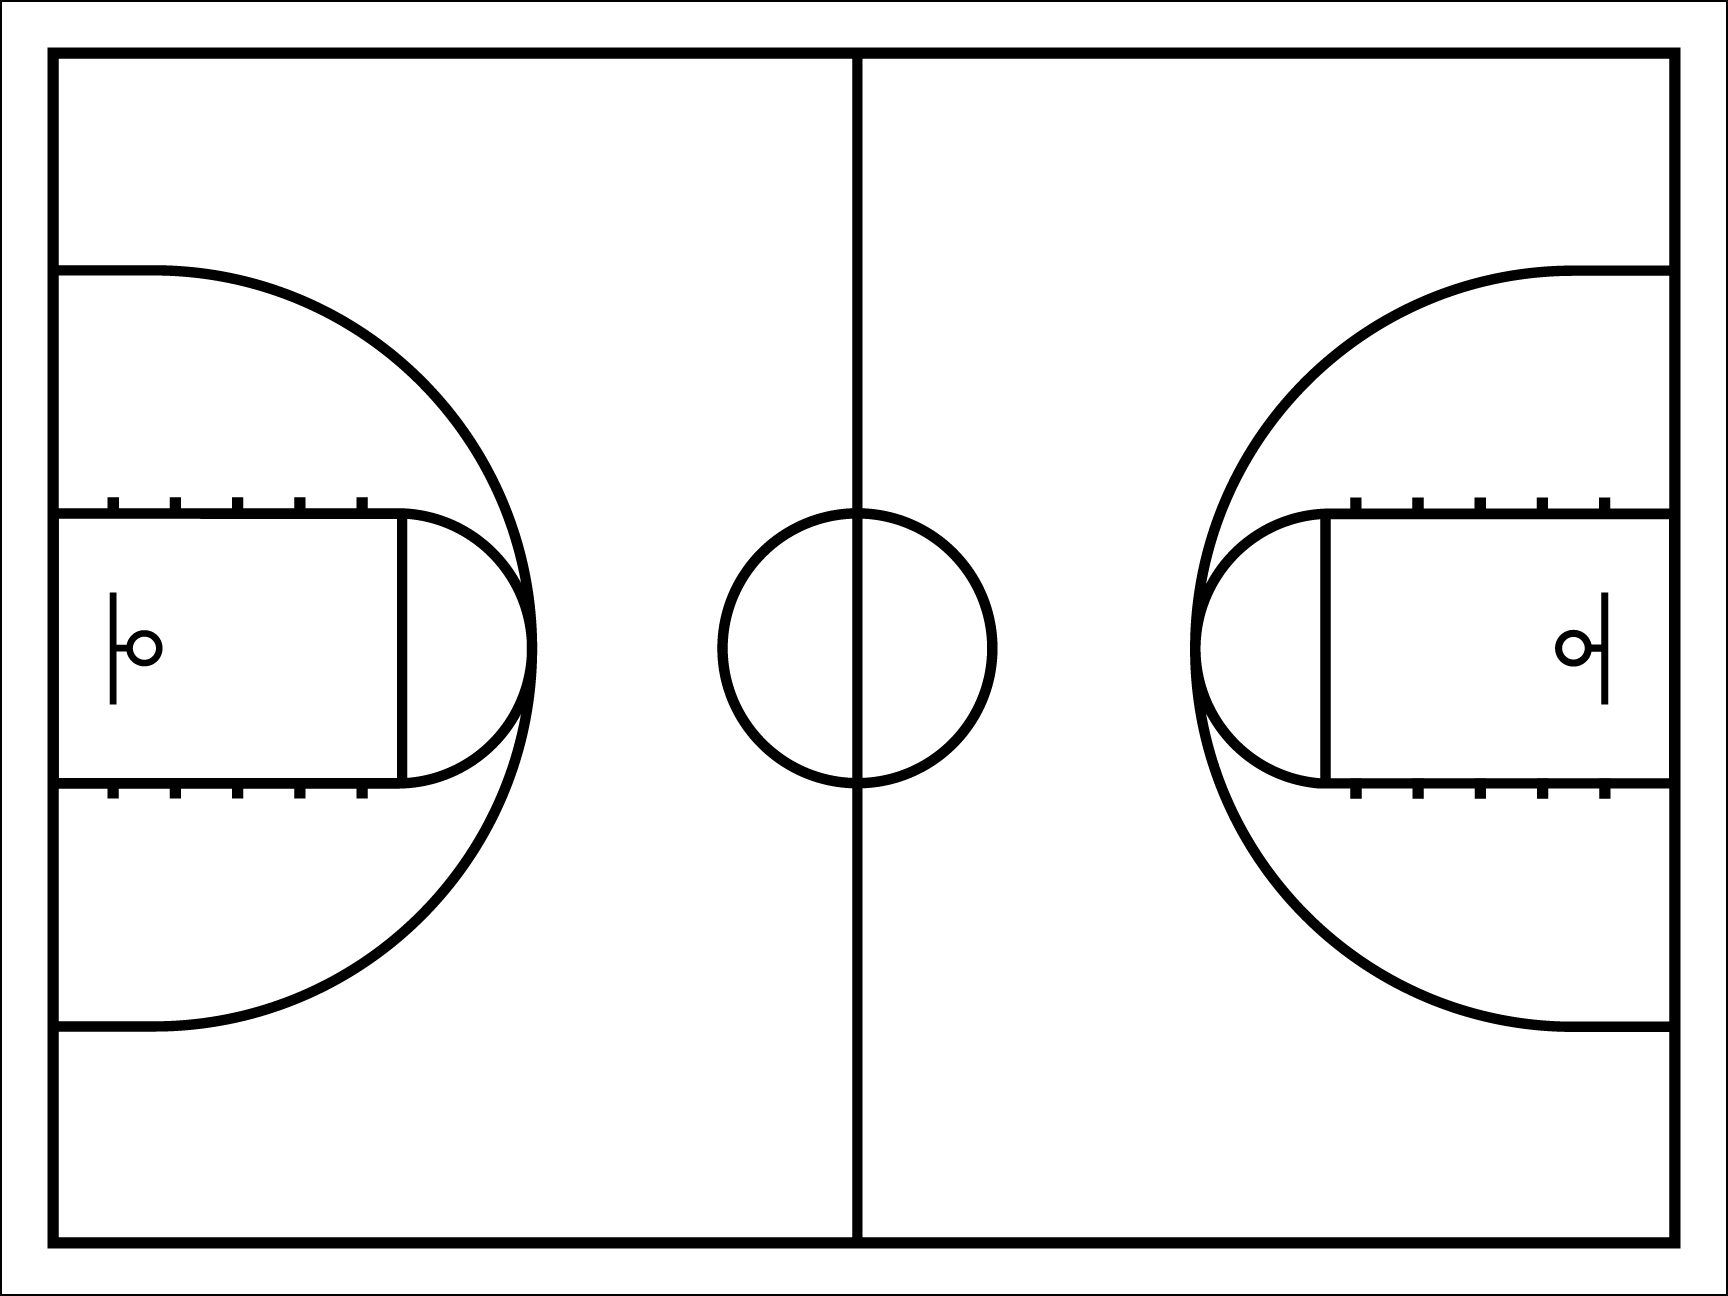 Basketball half court clipart graphic free library Half Court Basketball Template - Costumepartyrun graphic free library